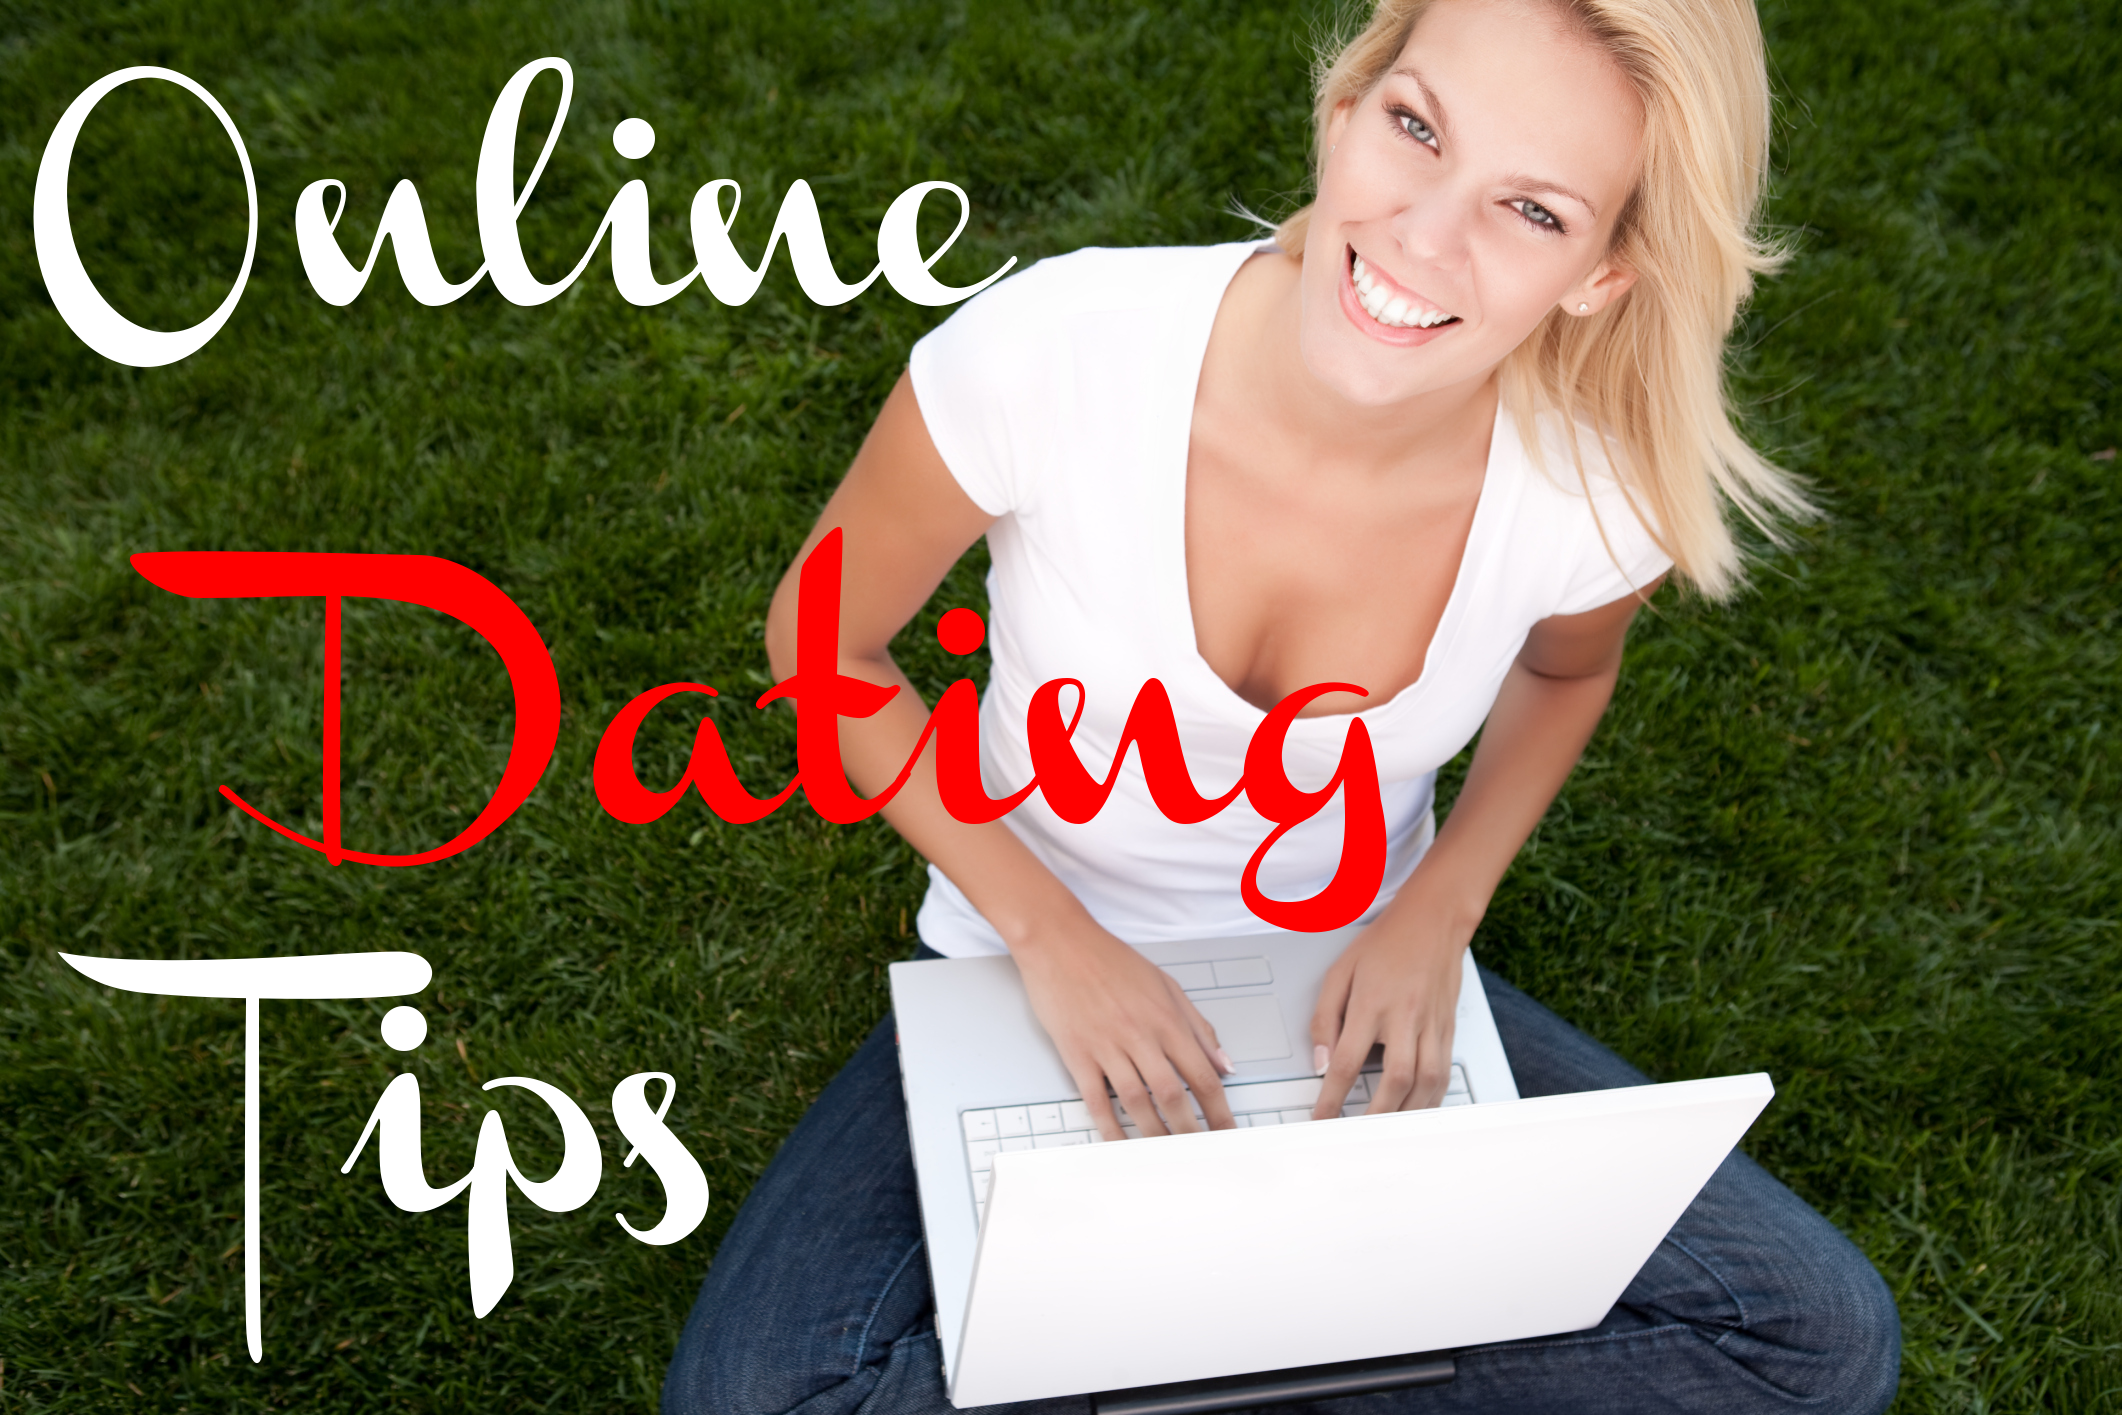 what are the online dating rules Matchcom, the leading online dating resource for singles search through thousands of personals and photos go ahead, it's free to look.